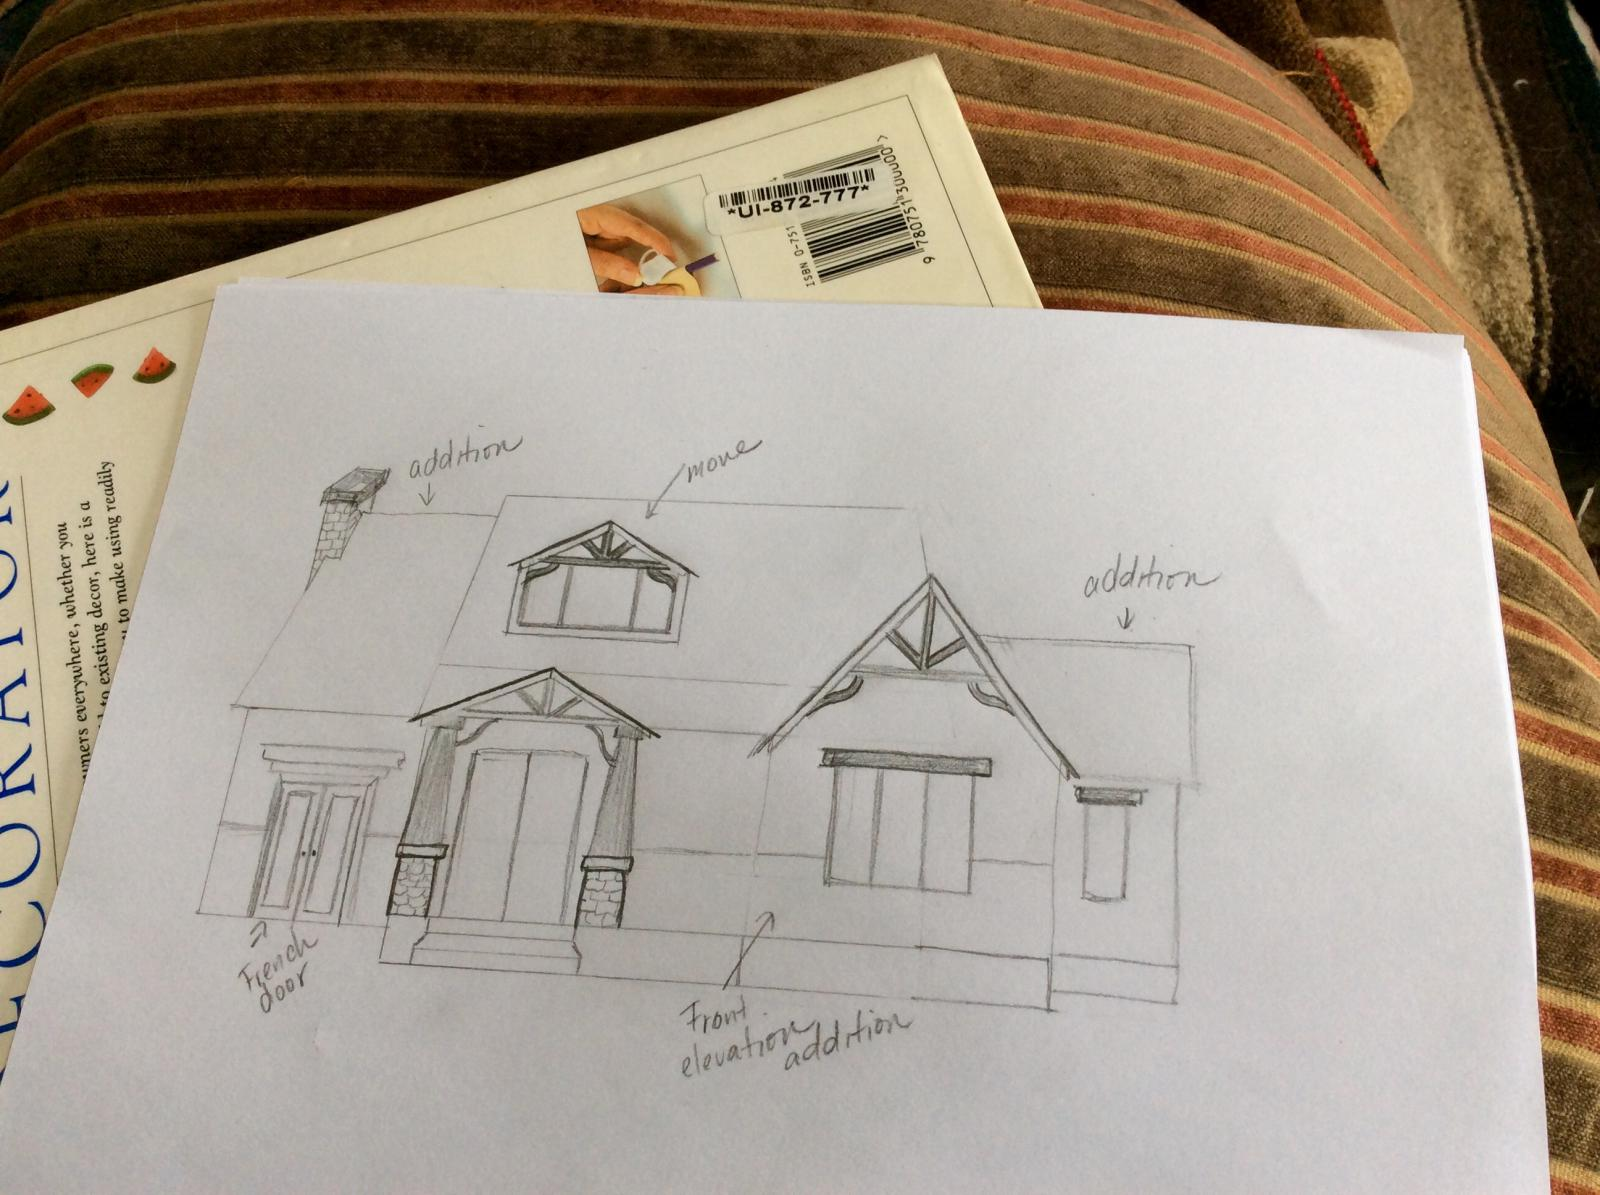 Sketch of potential ideas for Bungalow Bash